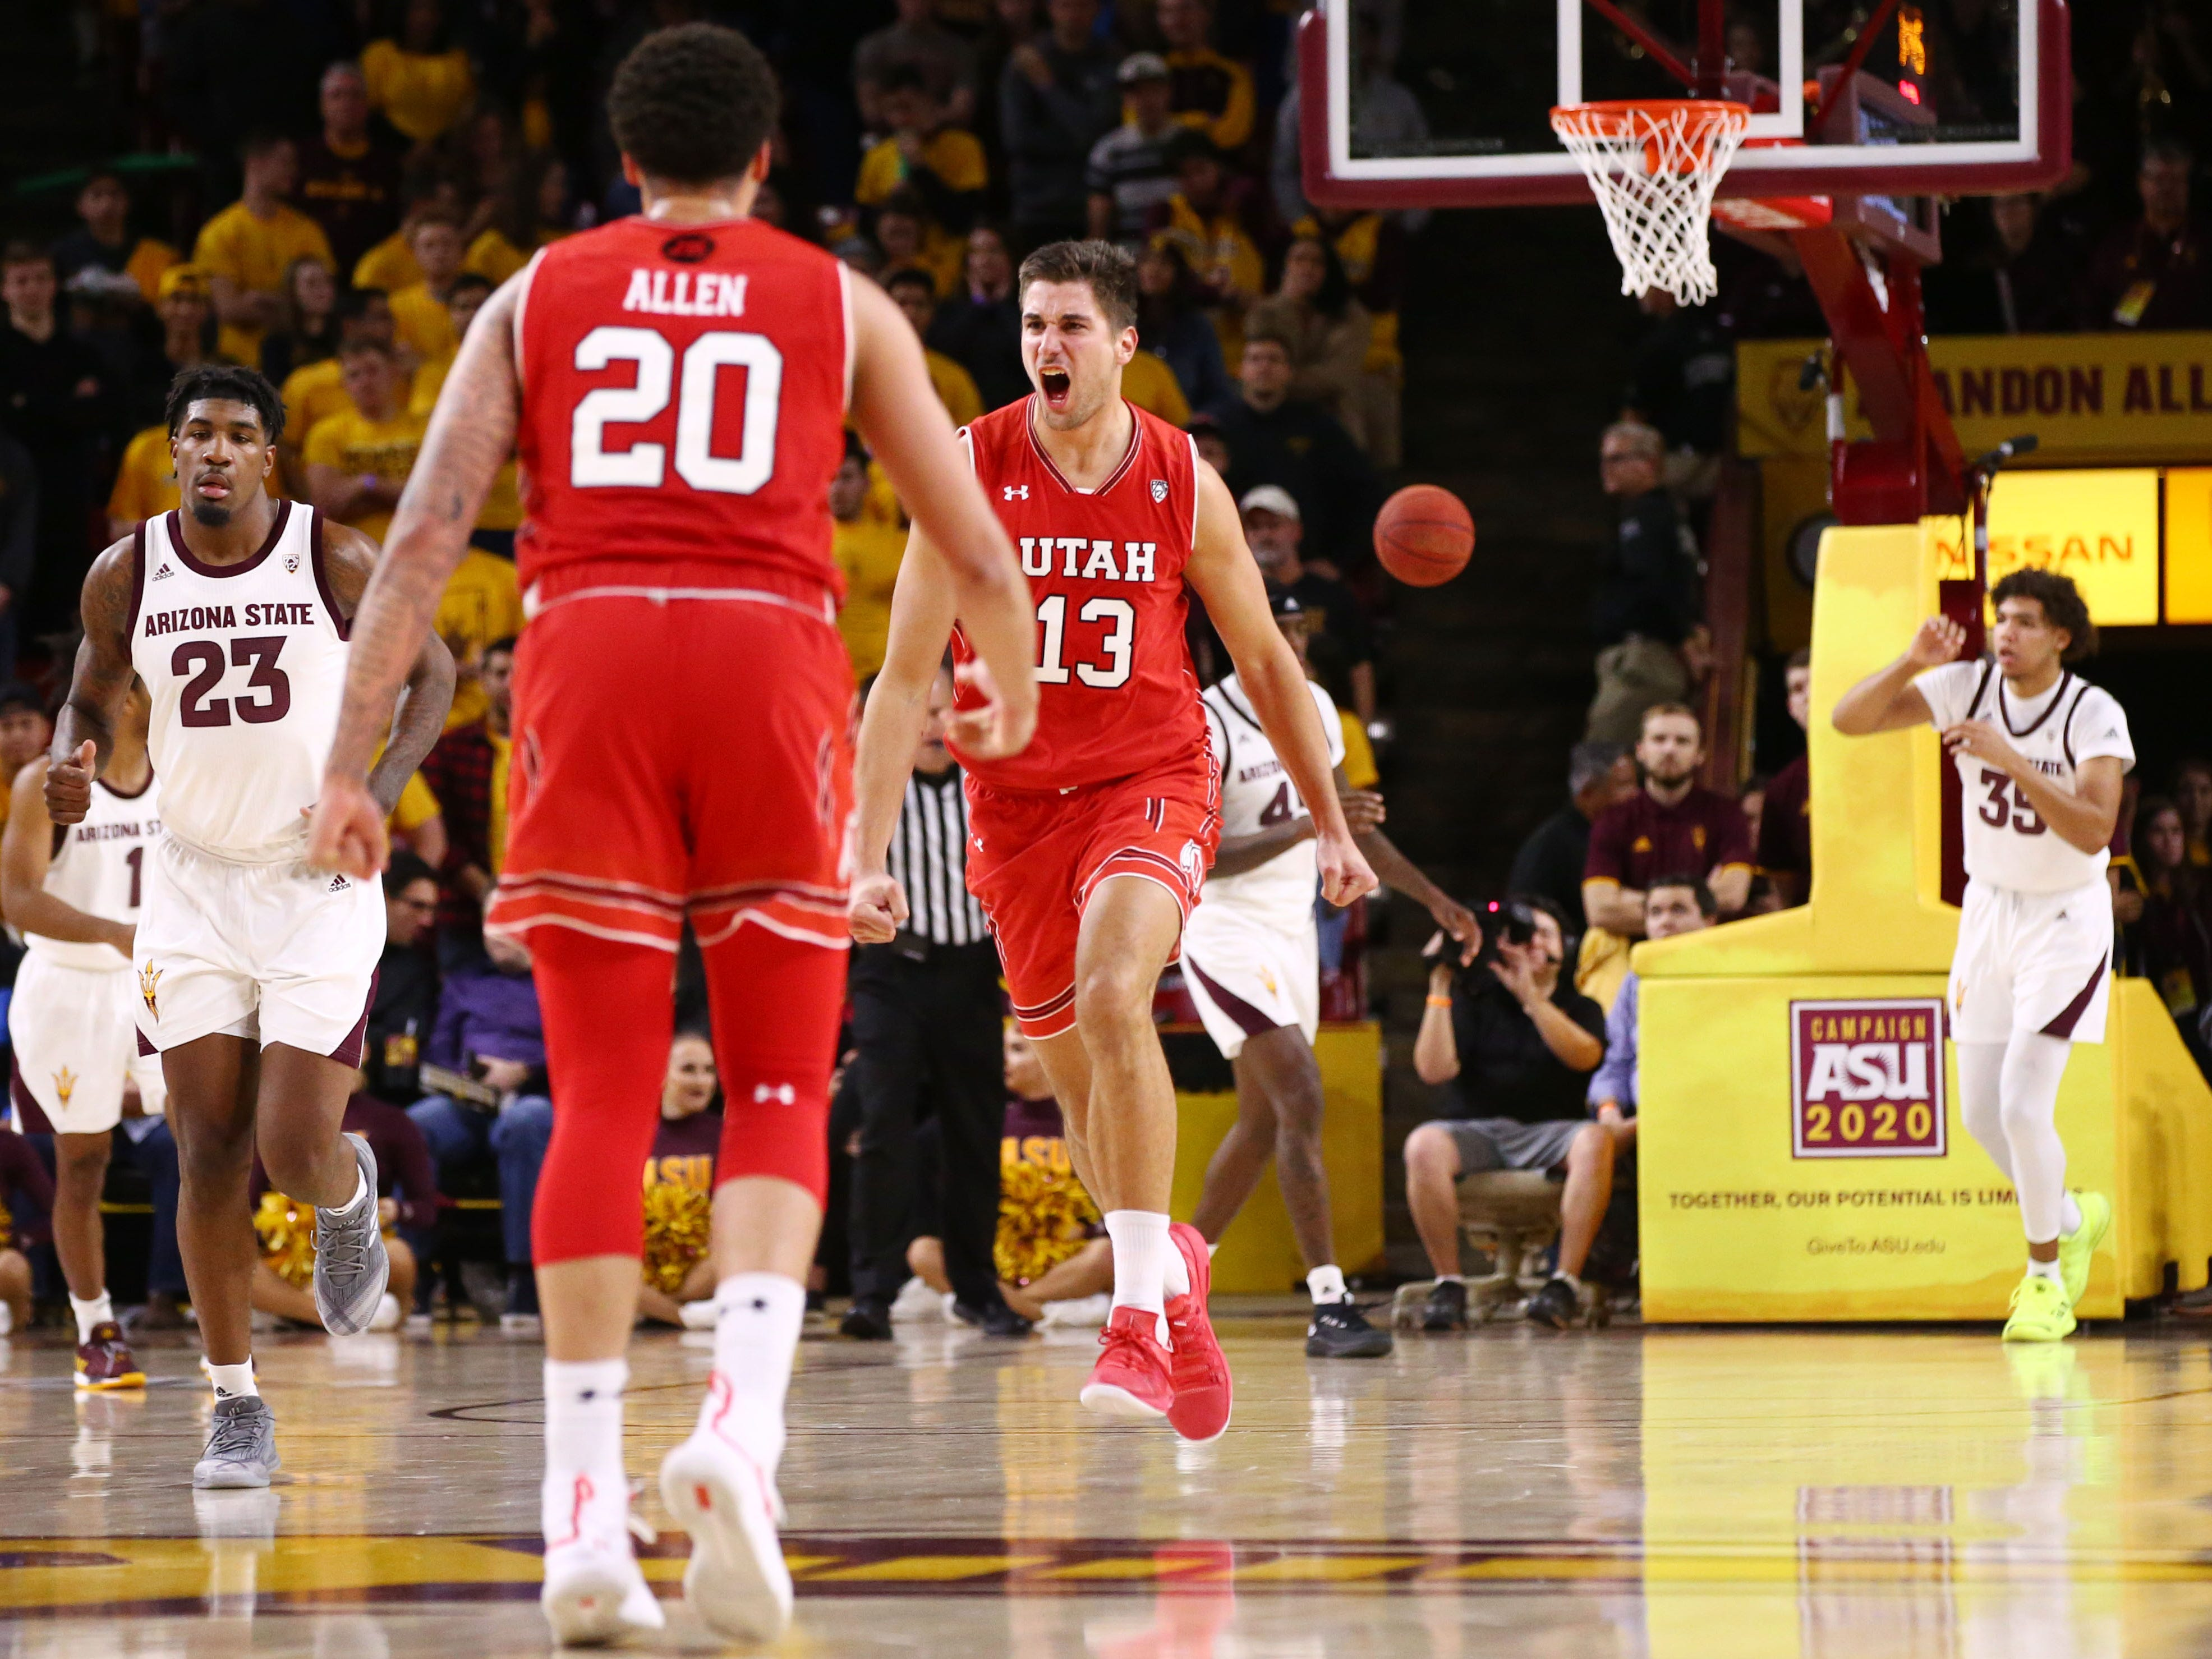 Utah Utes forward Novak Topalovic (13) reacts after a slam-dunks against the Arizona State Sun Devils in the second half on Jan. 3 at Wells Fargo Arena in Tempe.